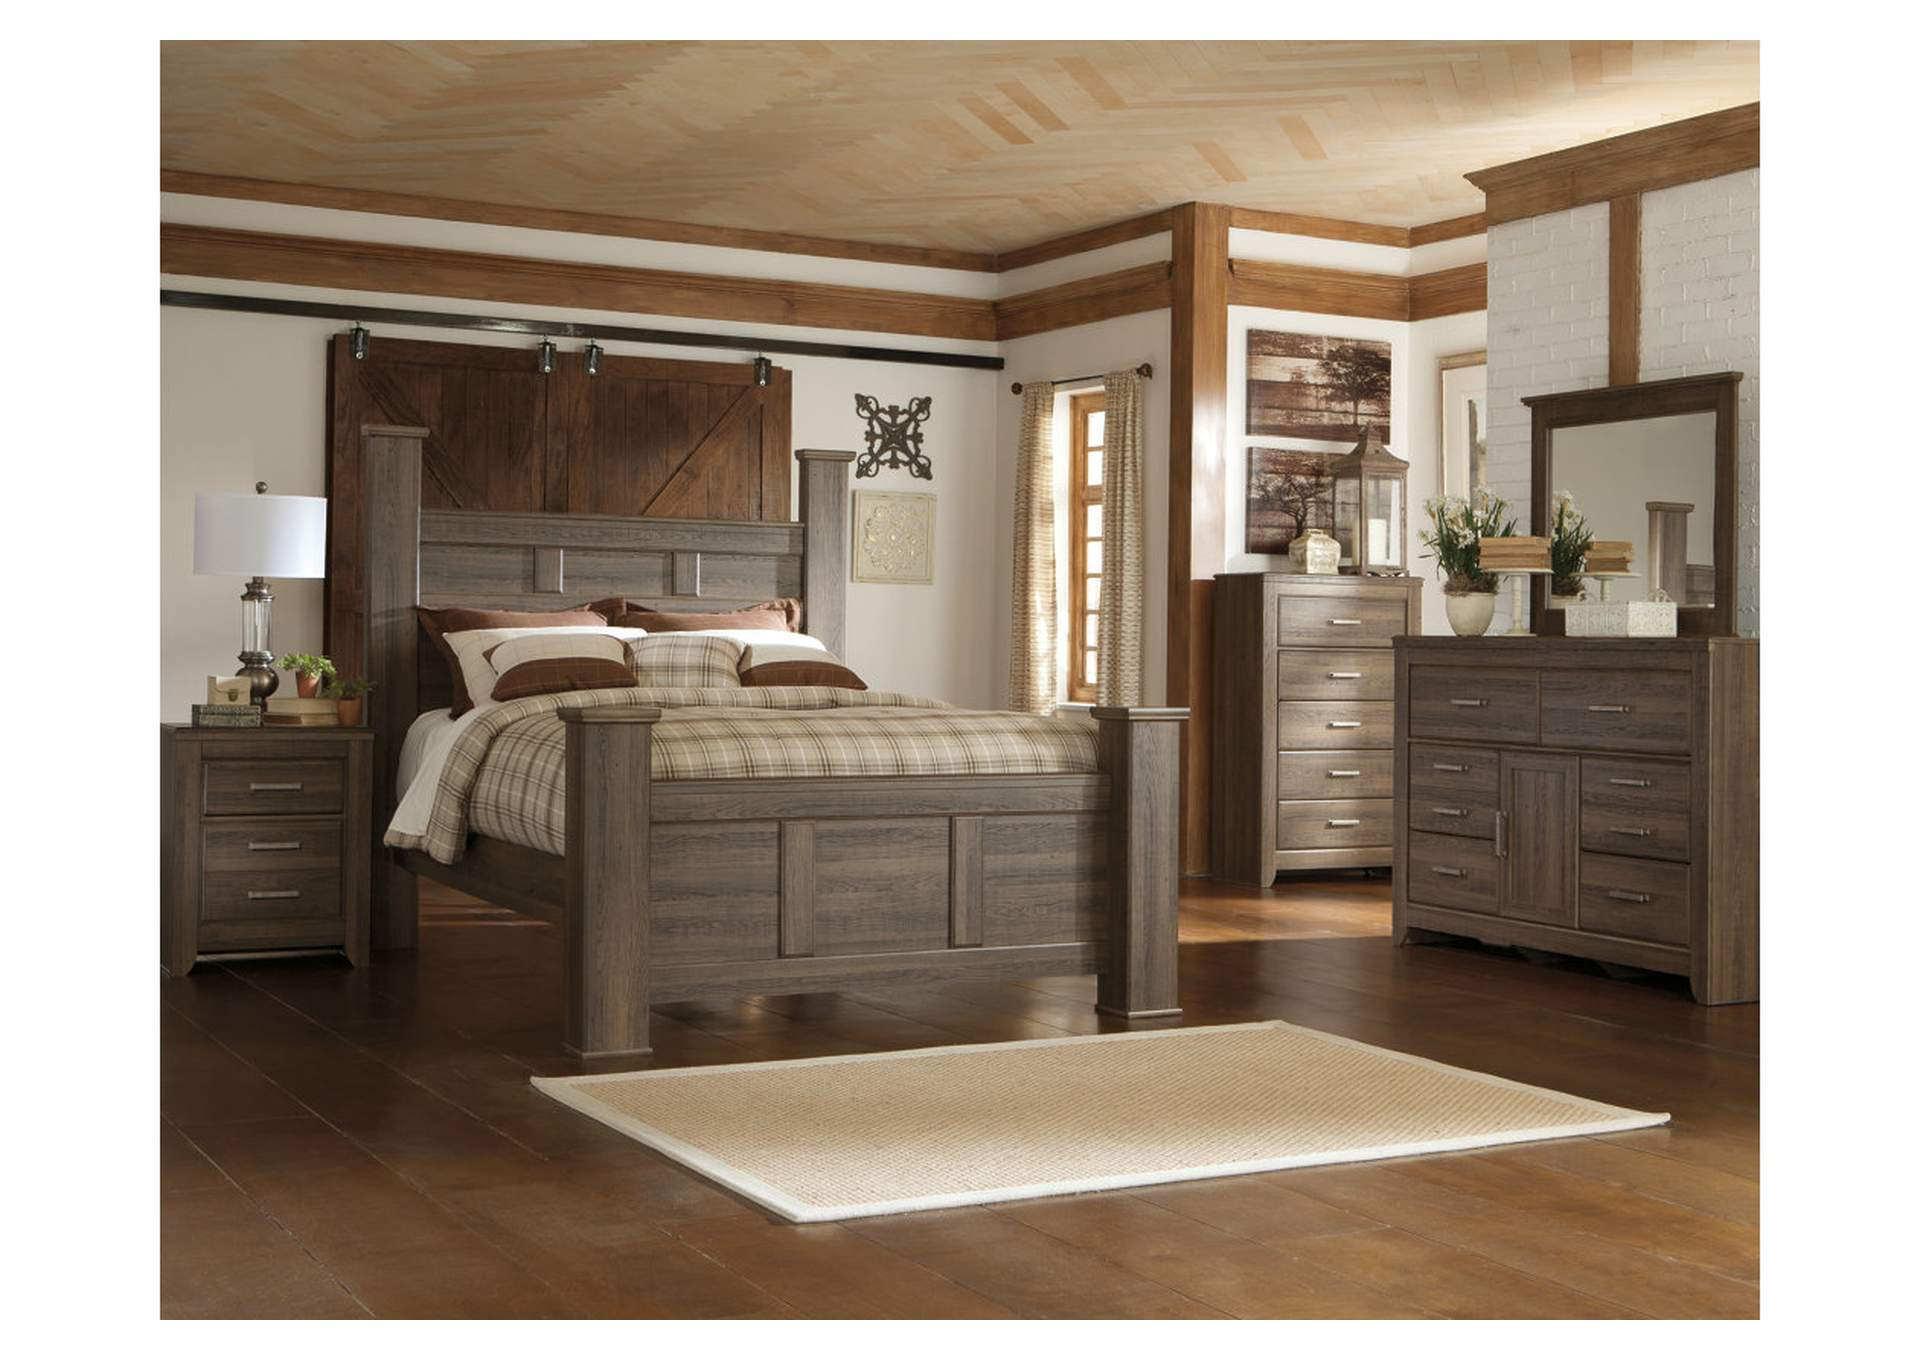 Juararo California King Poster Bed w/Dresser, Mirror, Drawer Chest & Nightstand,Signature Design By Ashley